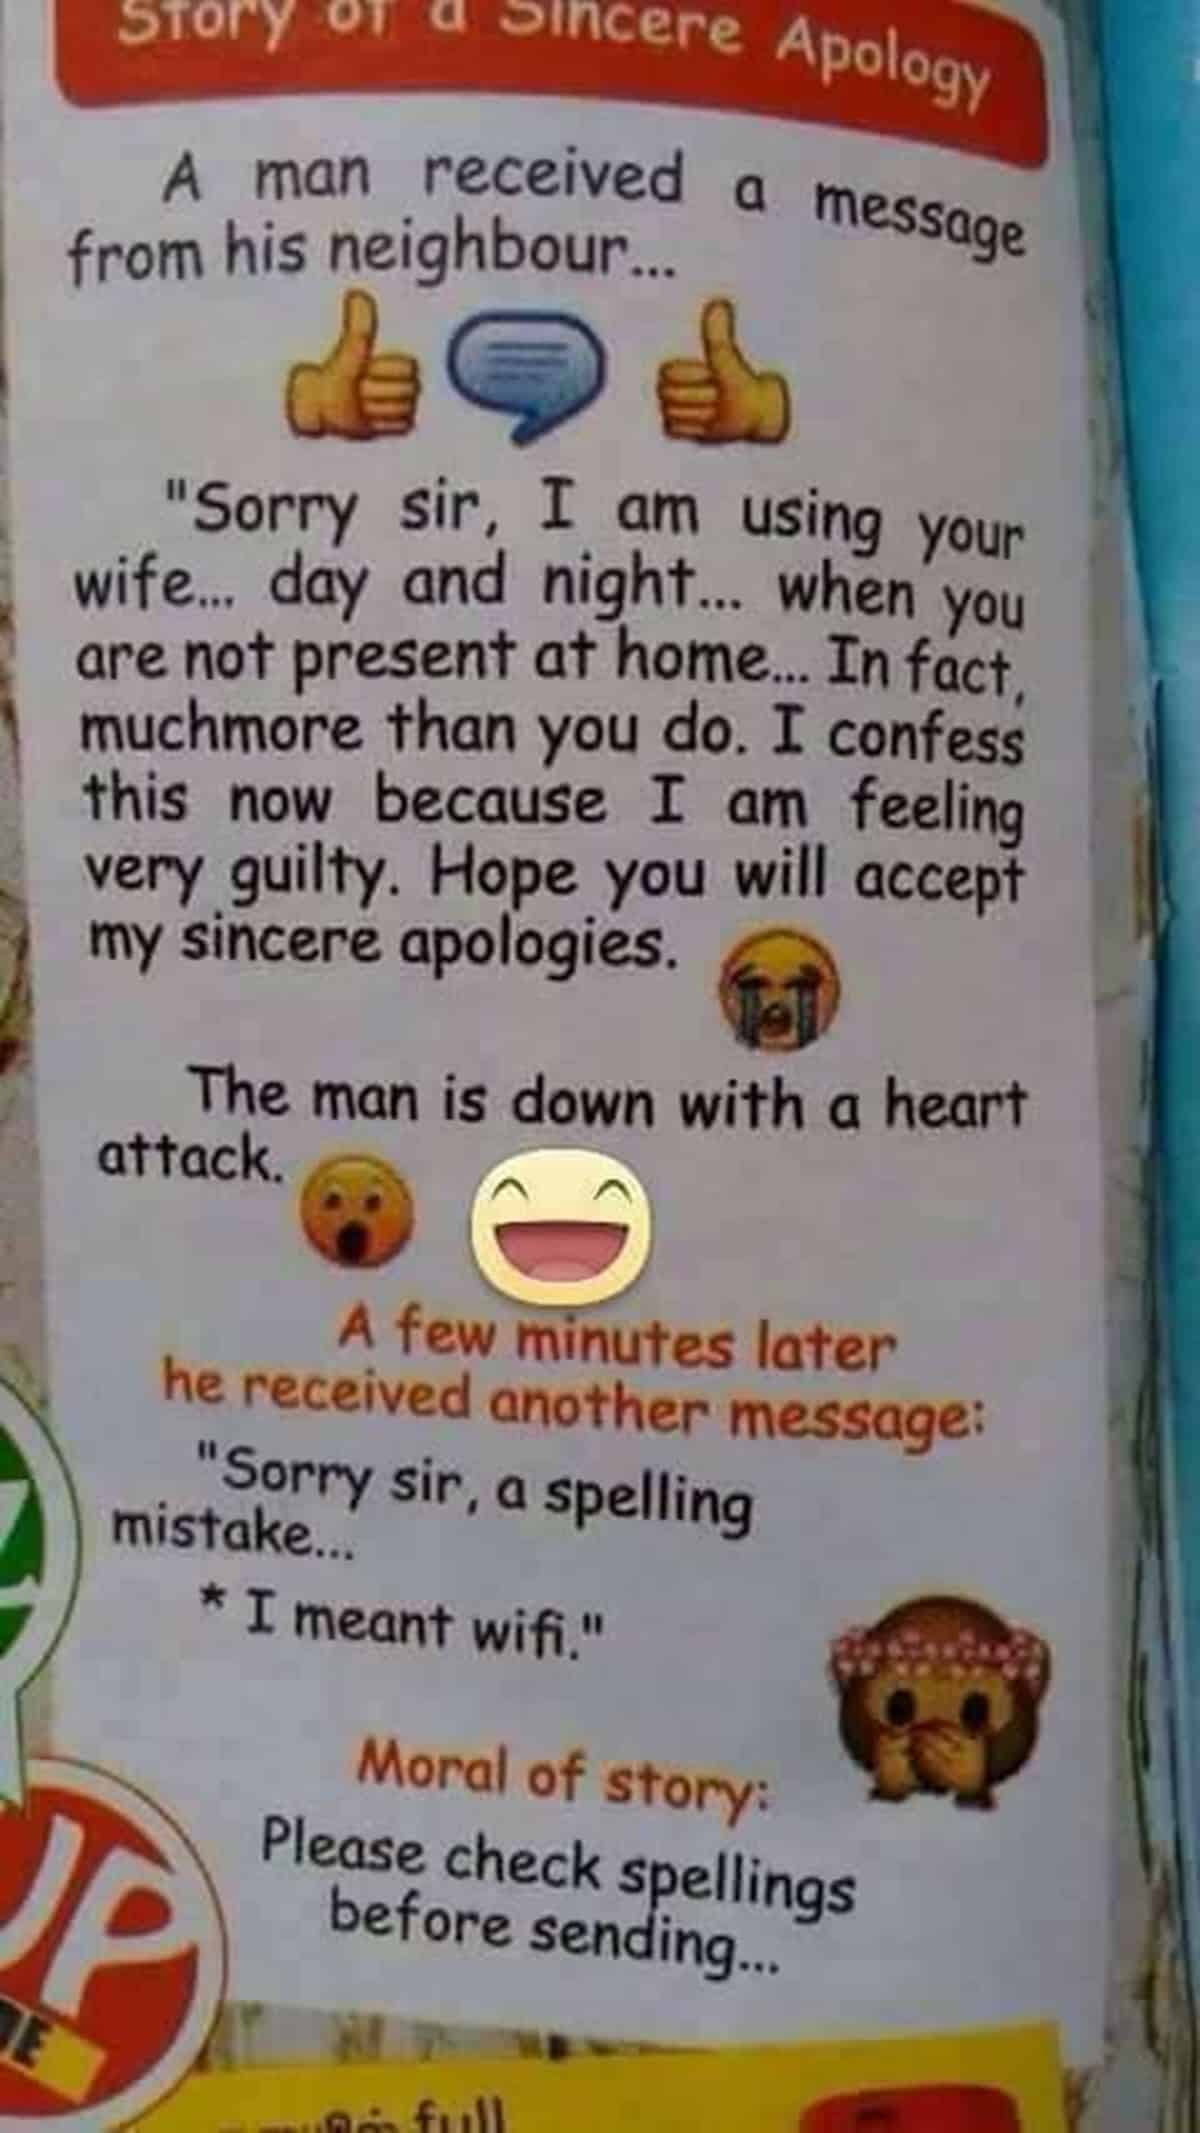 Wife vs. Wifi